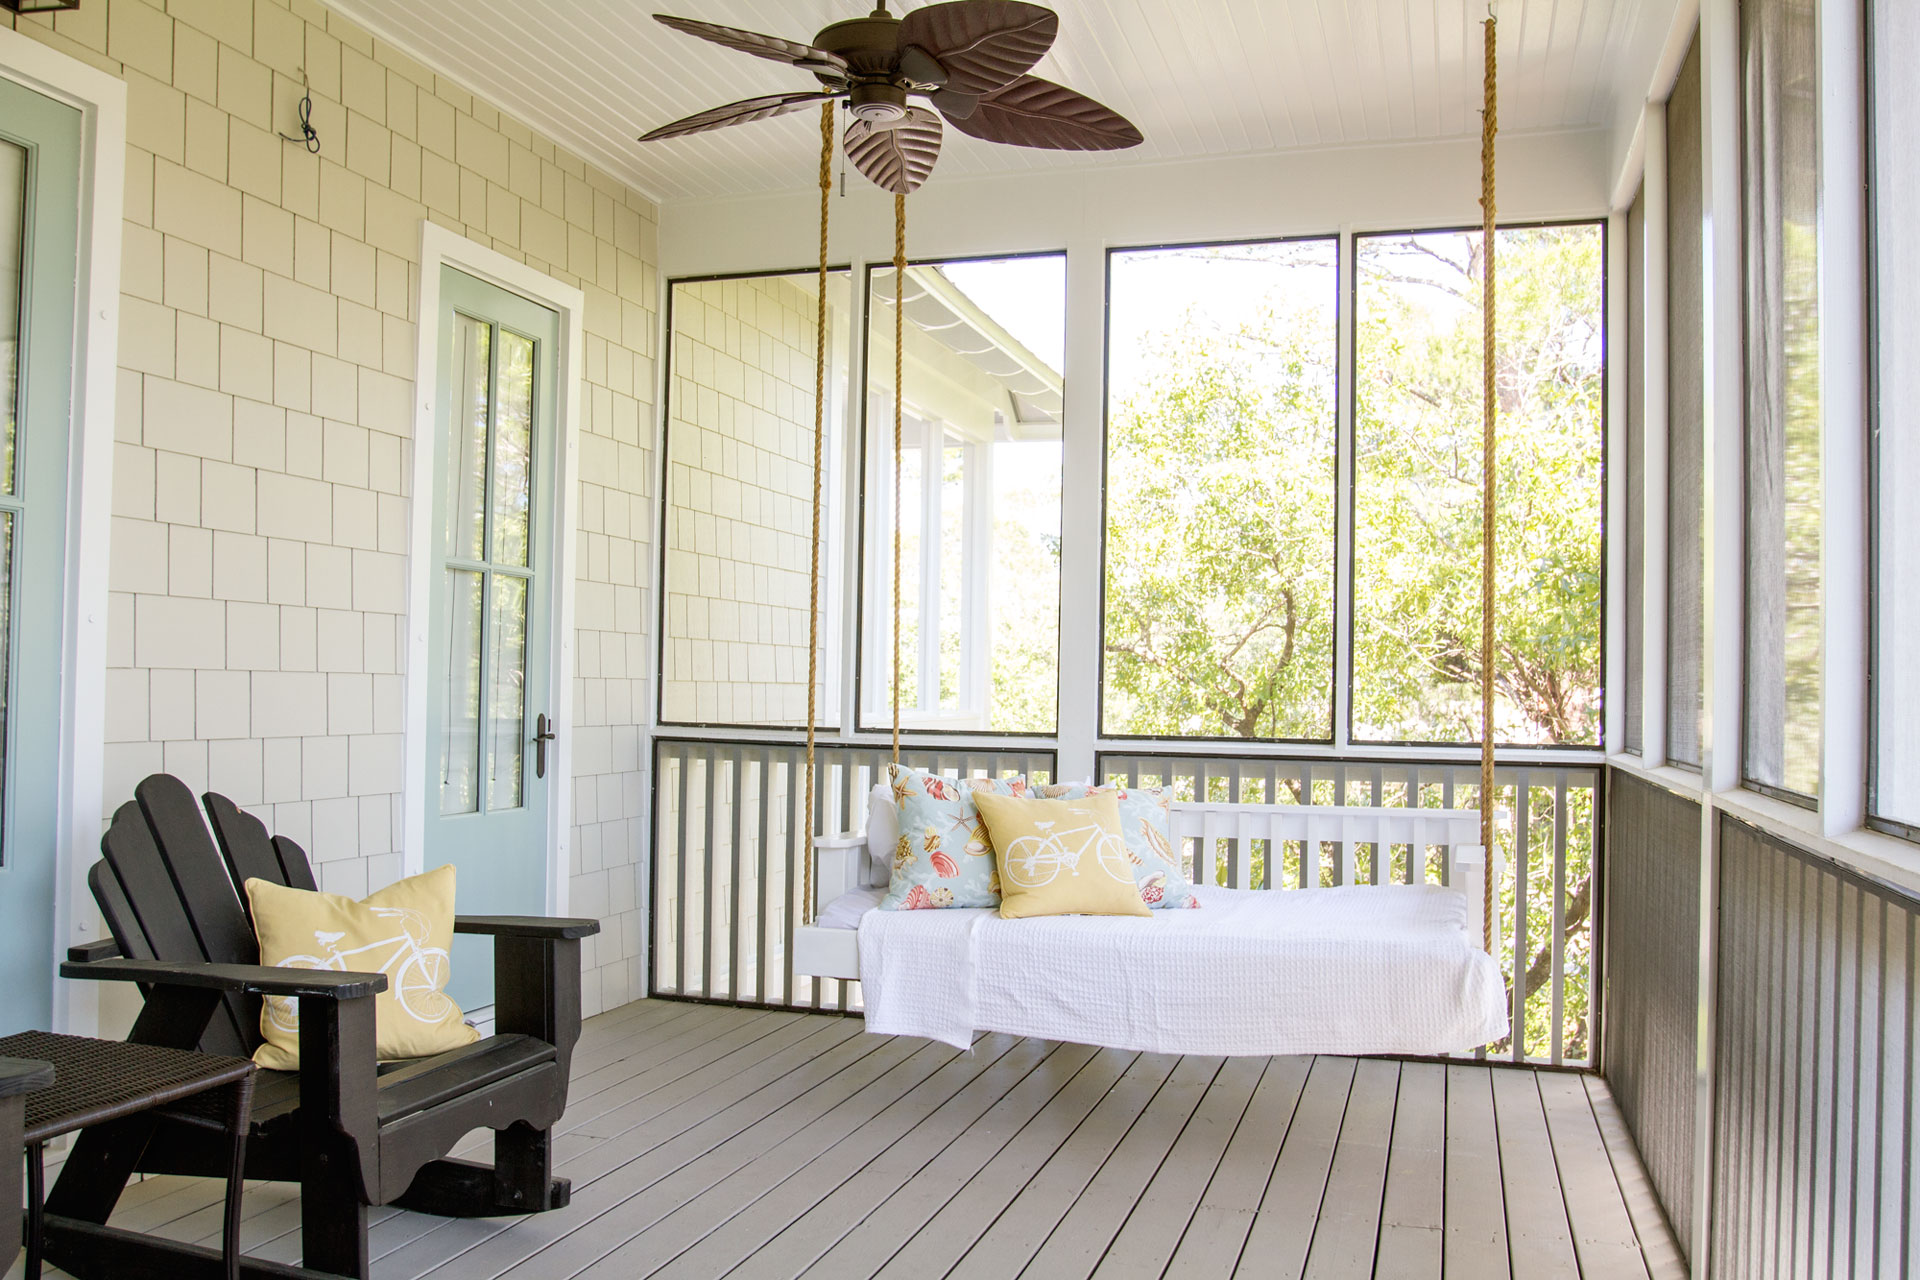 Second Floor Porch Swing